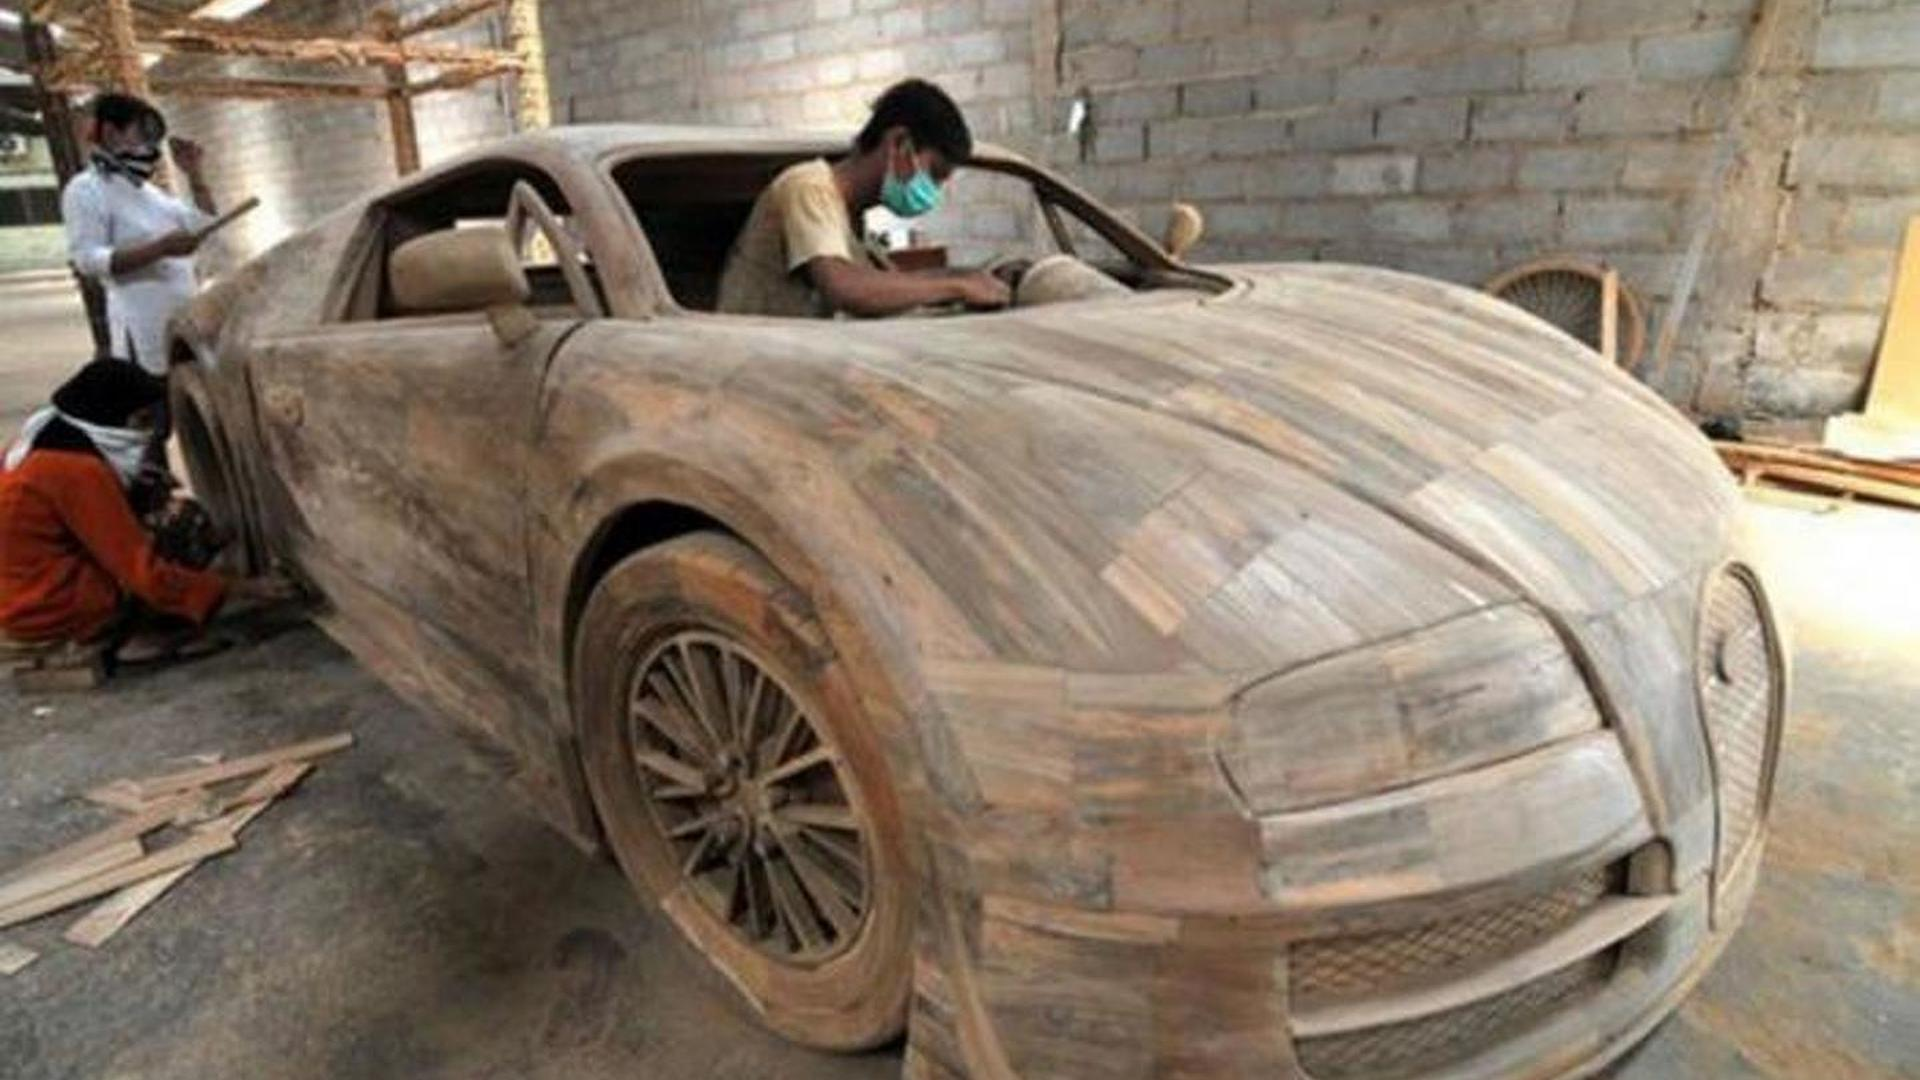 Bugatti Veyron full-size replica made from wood costs just $3,300 ...